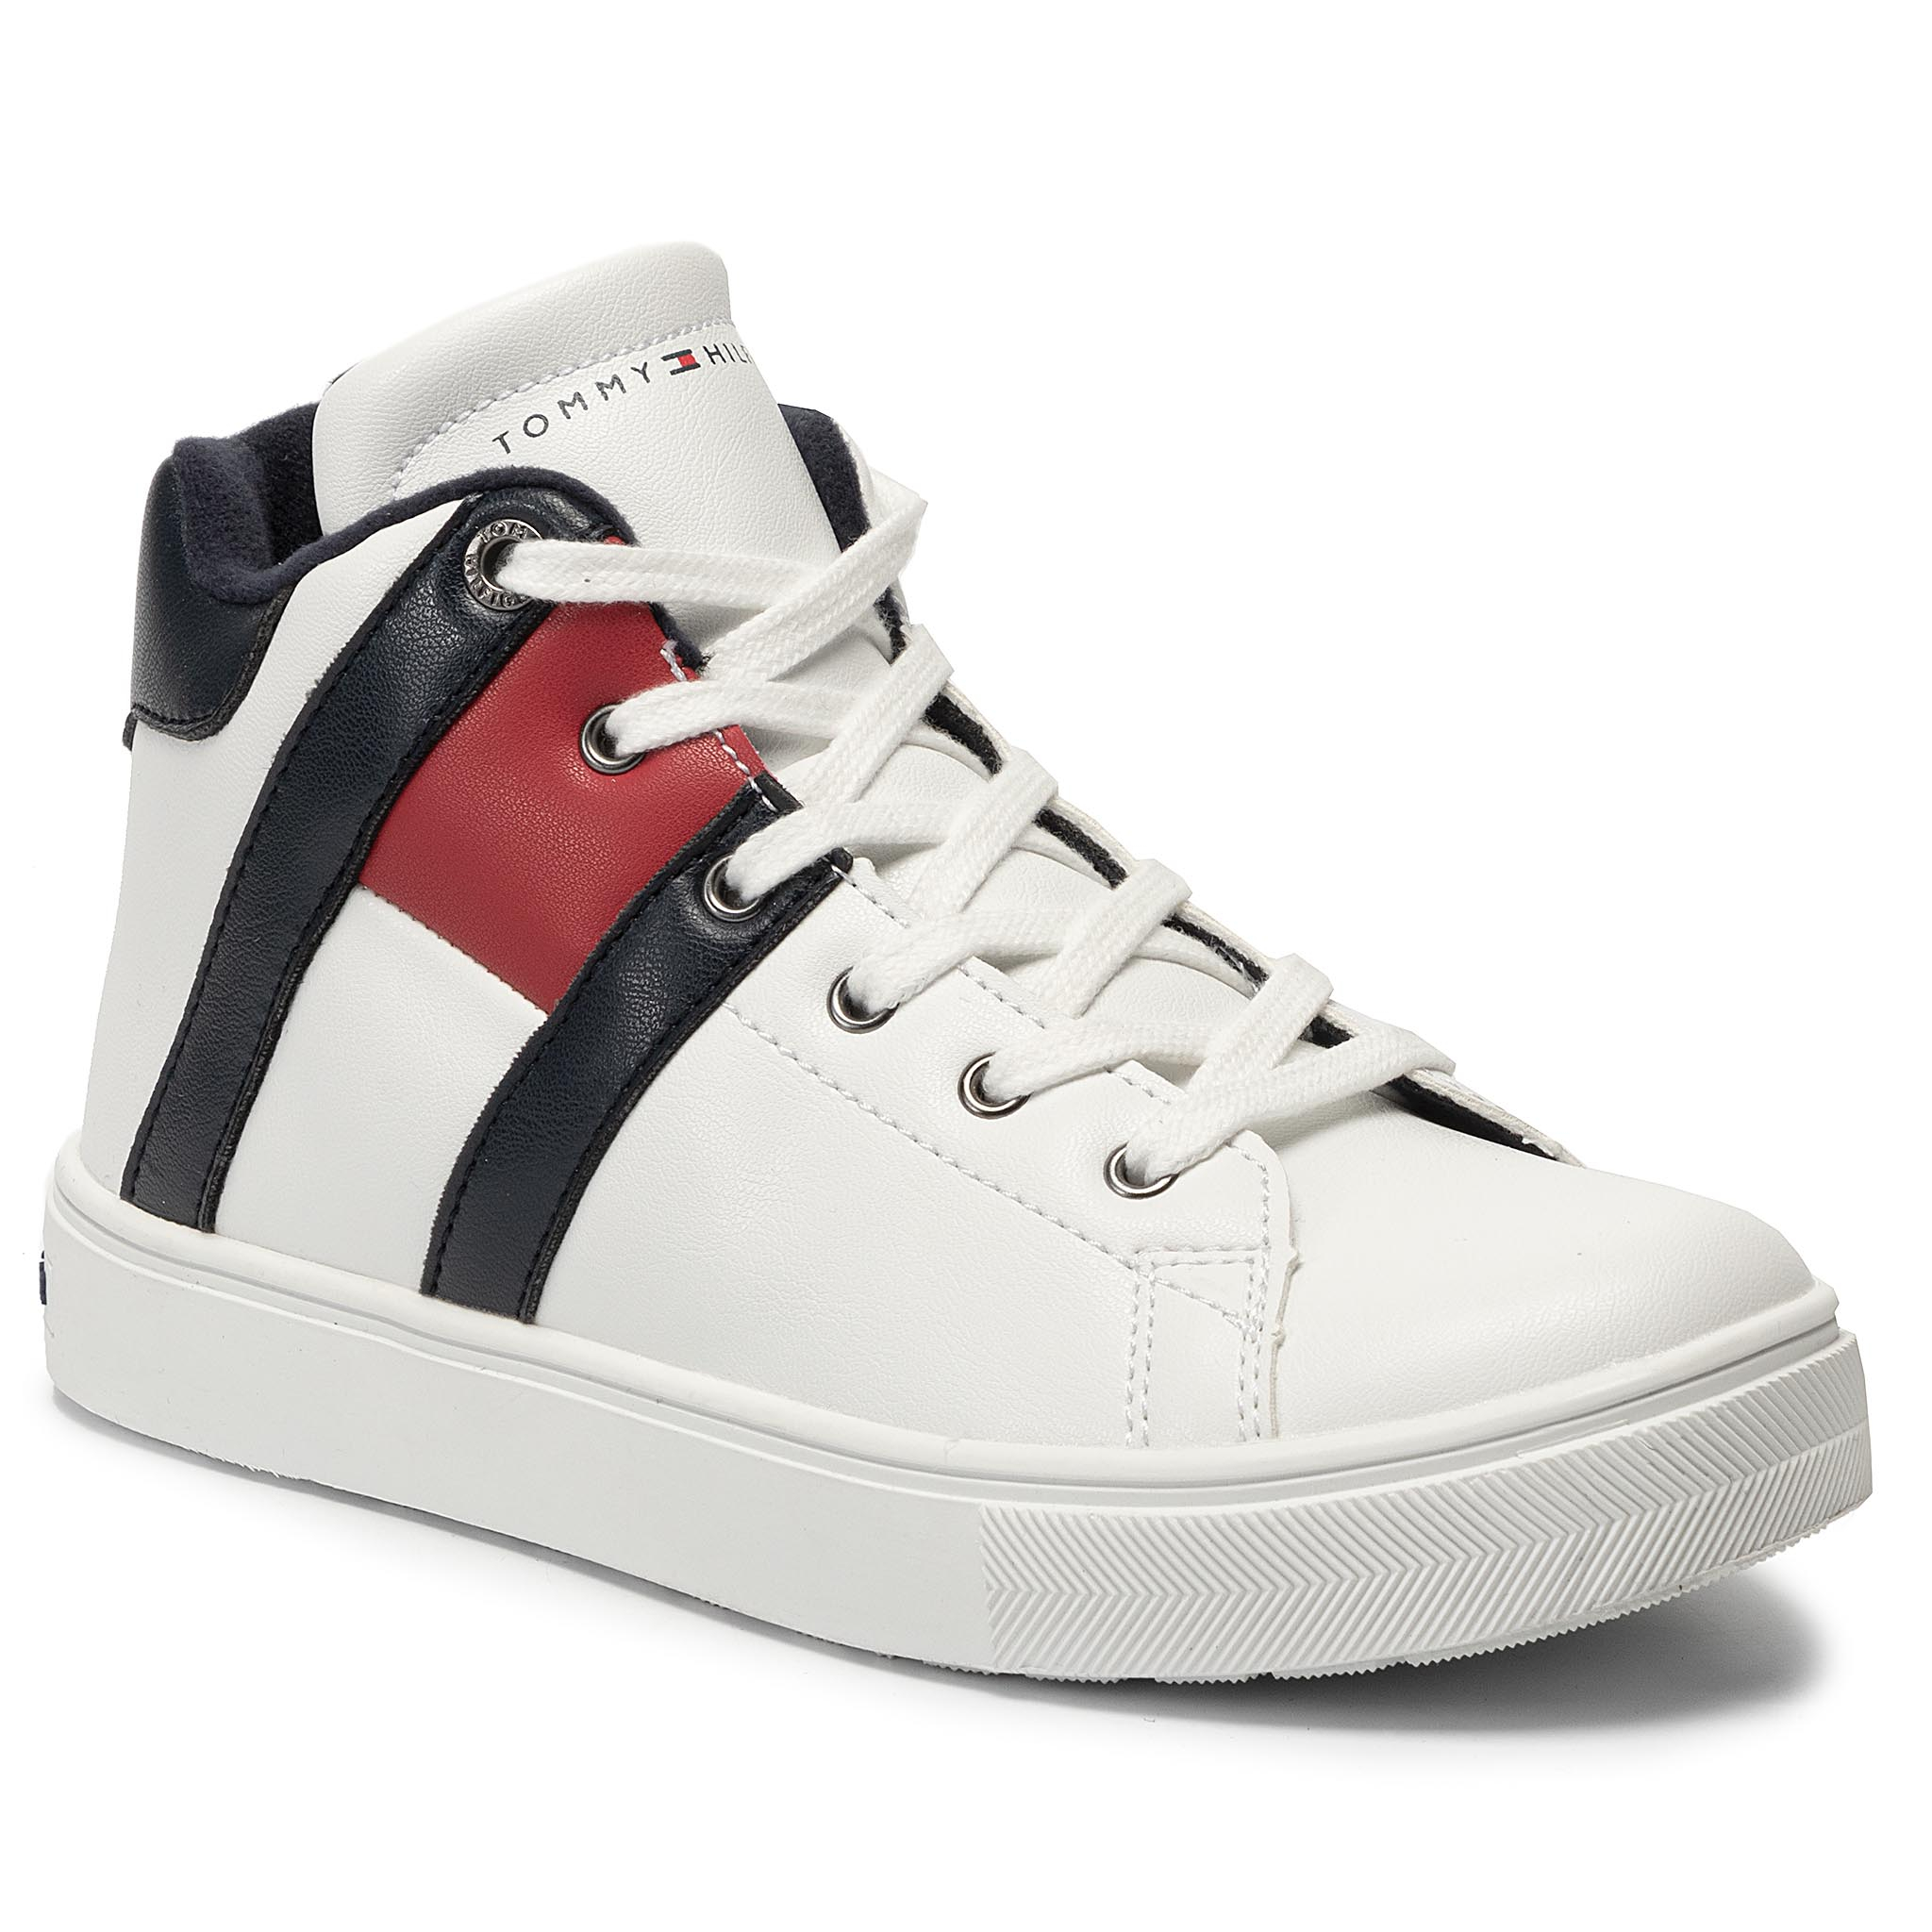 Sneakers TOMMY HILFIGER - High Top Lace-Up Sneaker T3B4-30510-0739 D White/Blue X008